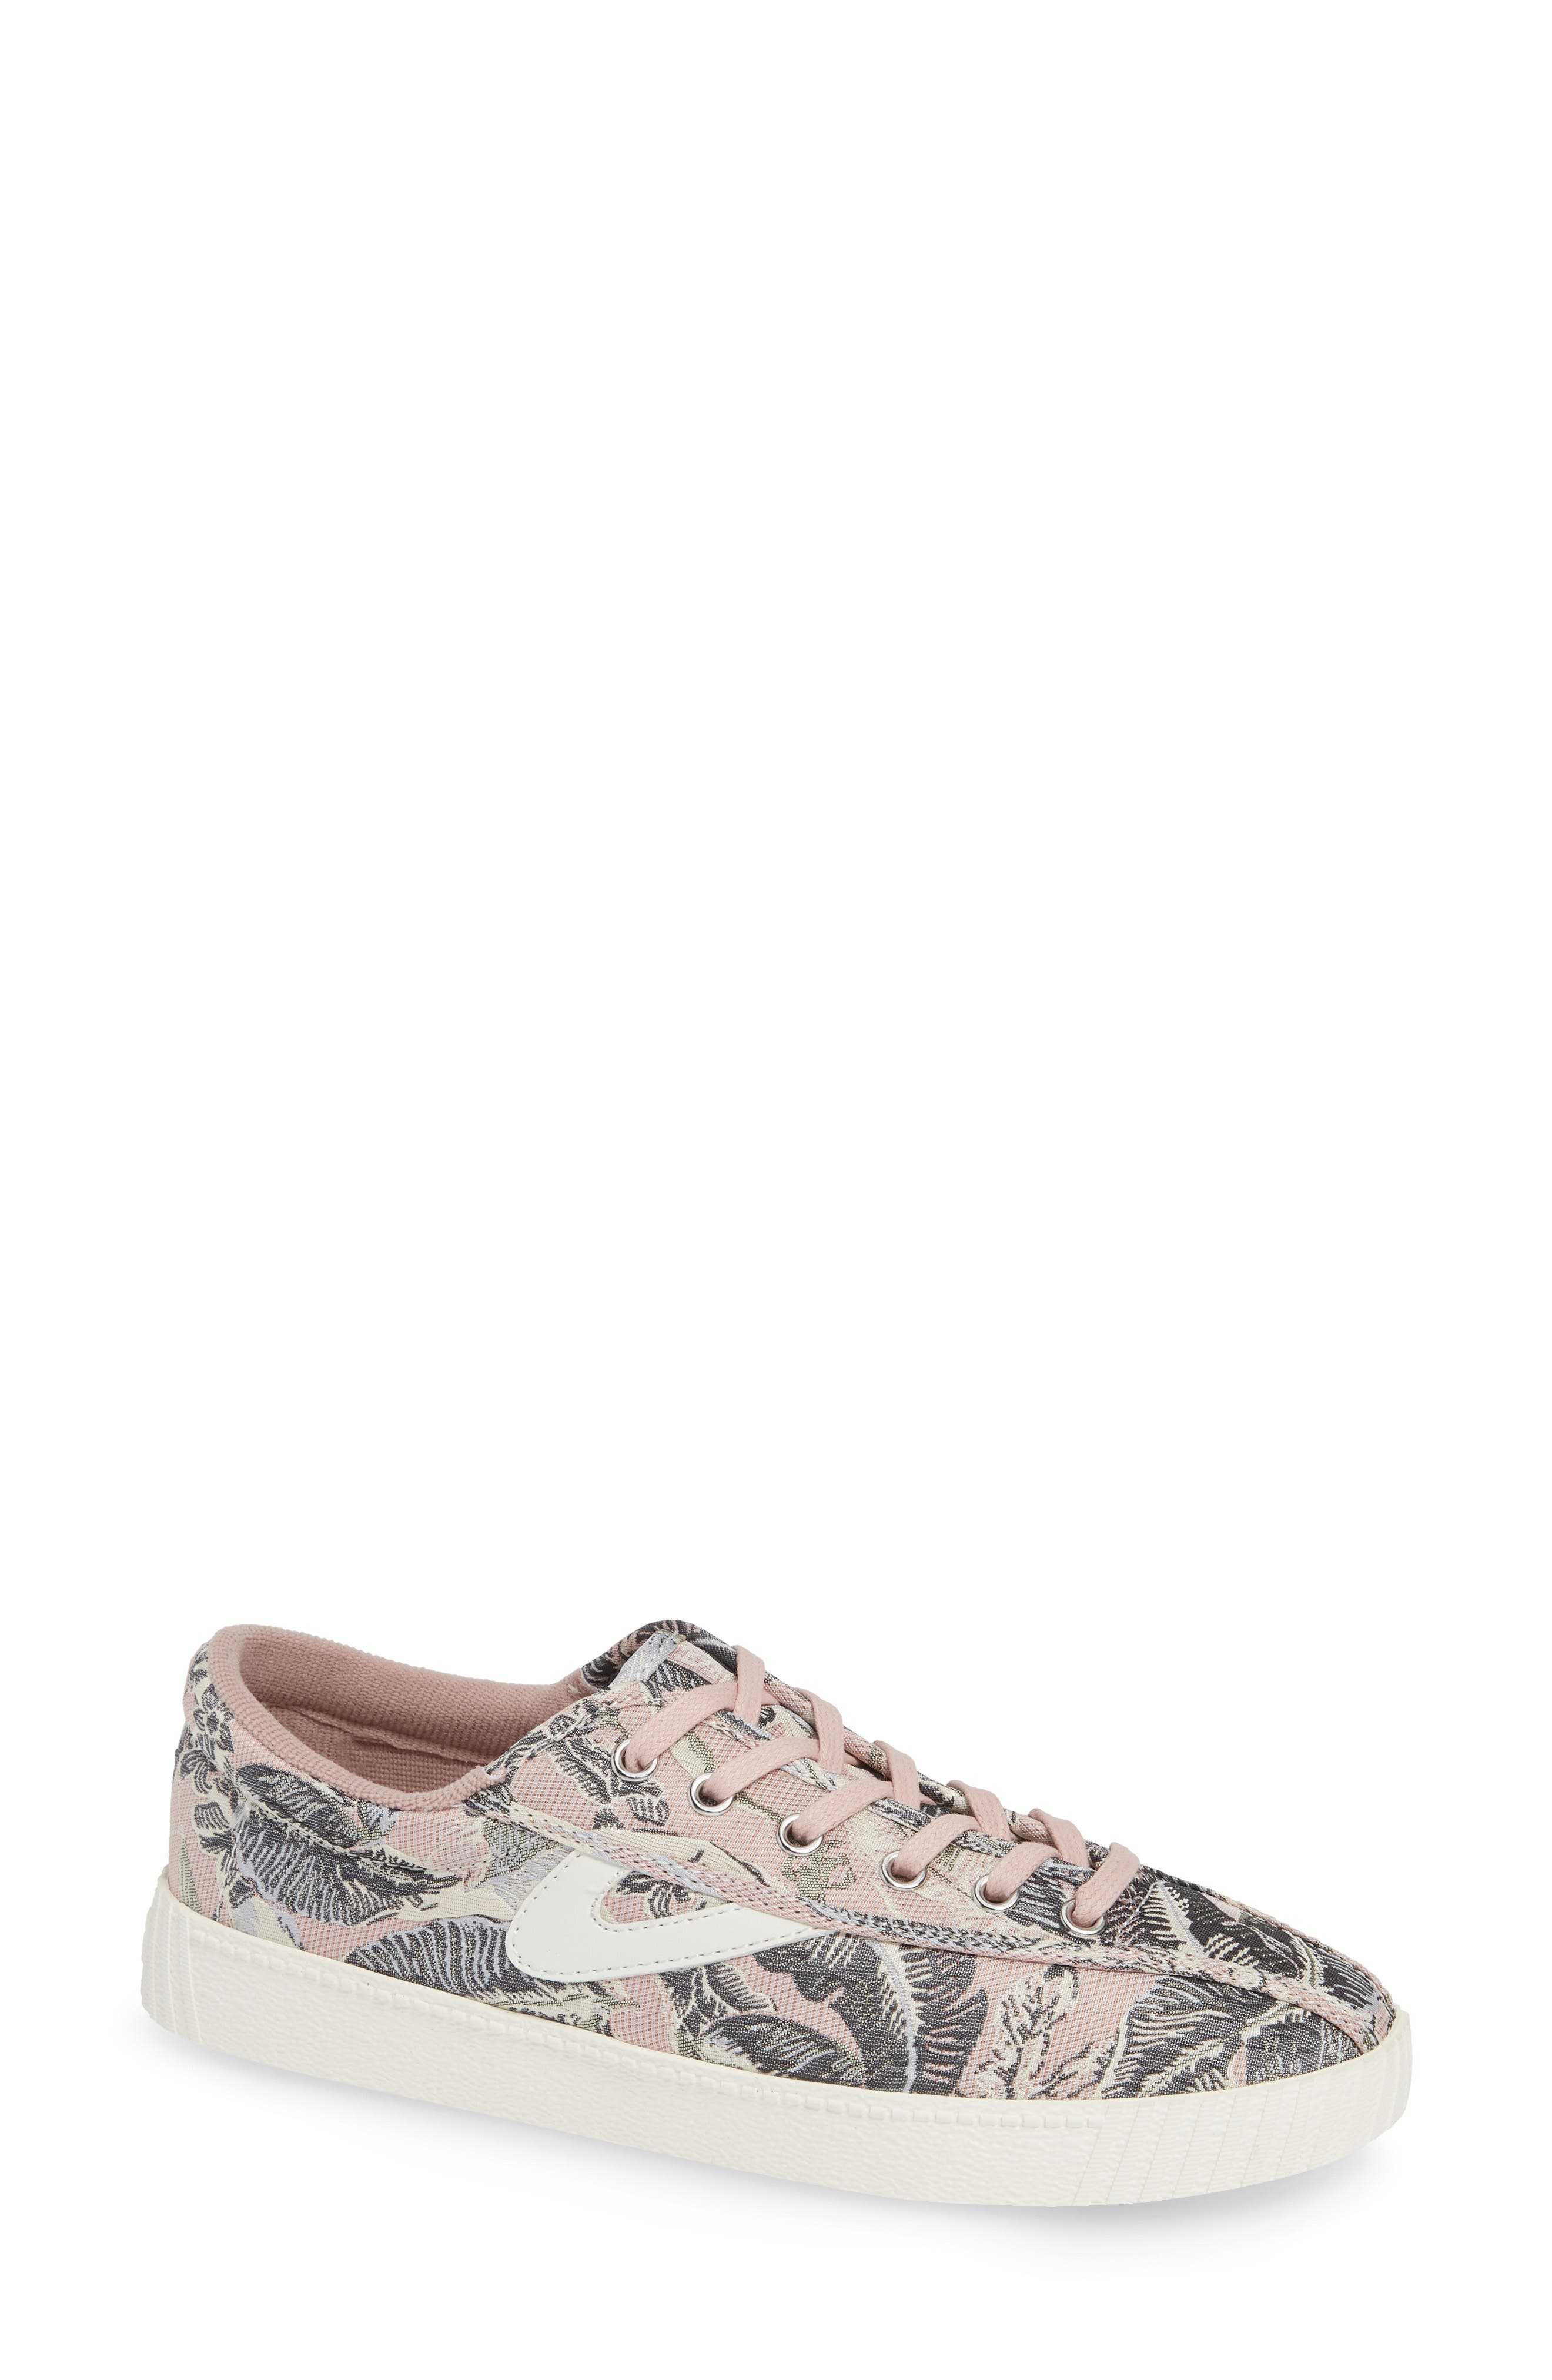 Nylite Plus Jacquard Low-Top Sneakers in Blue/White